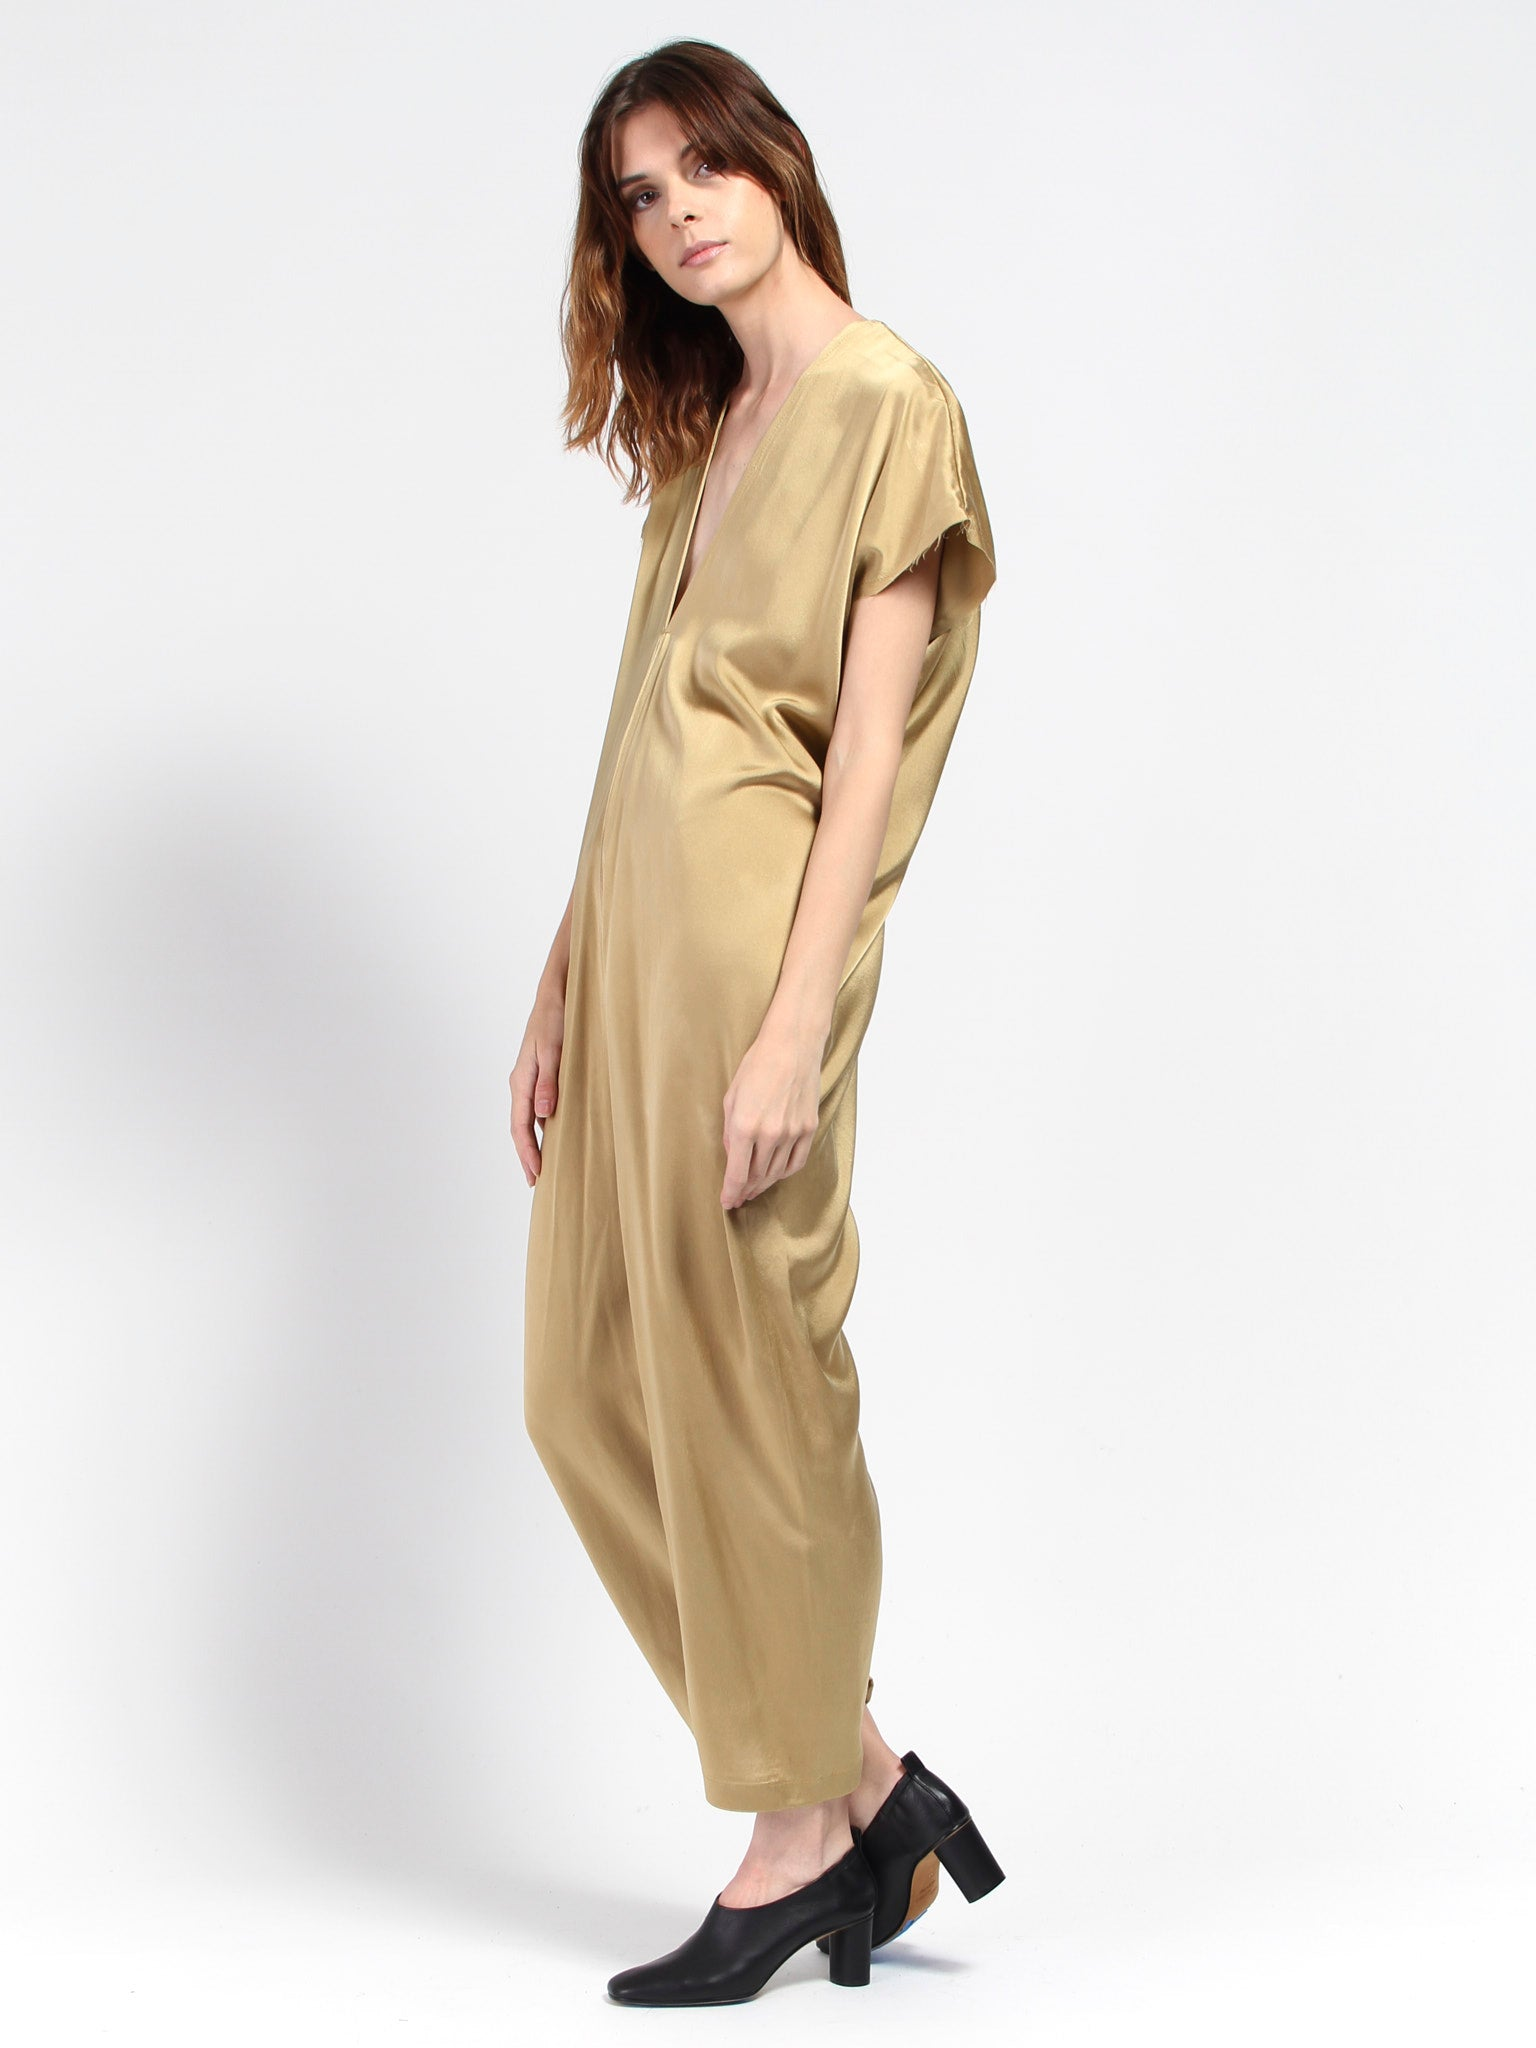 56775b6ee826f0 MIranda Bennett Everyday Jumpsuit - Nile Gold - SWORDS-SMITH